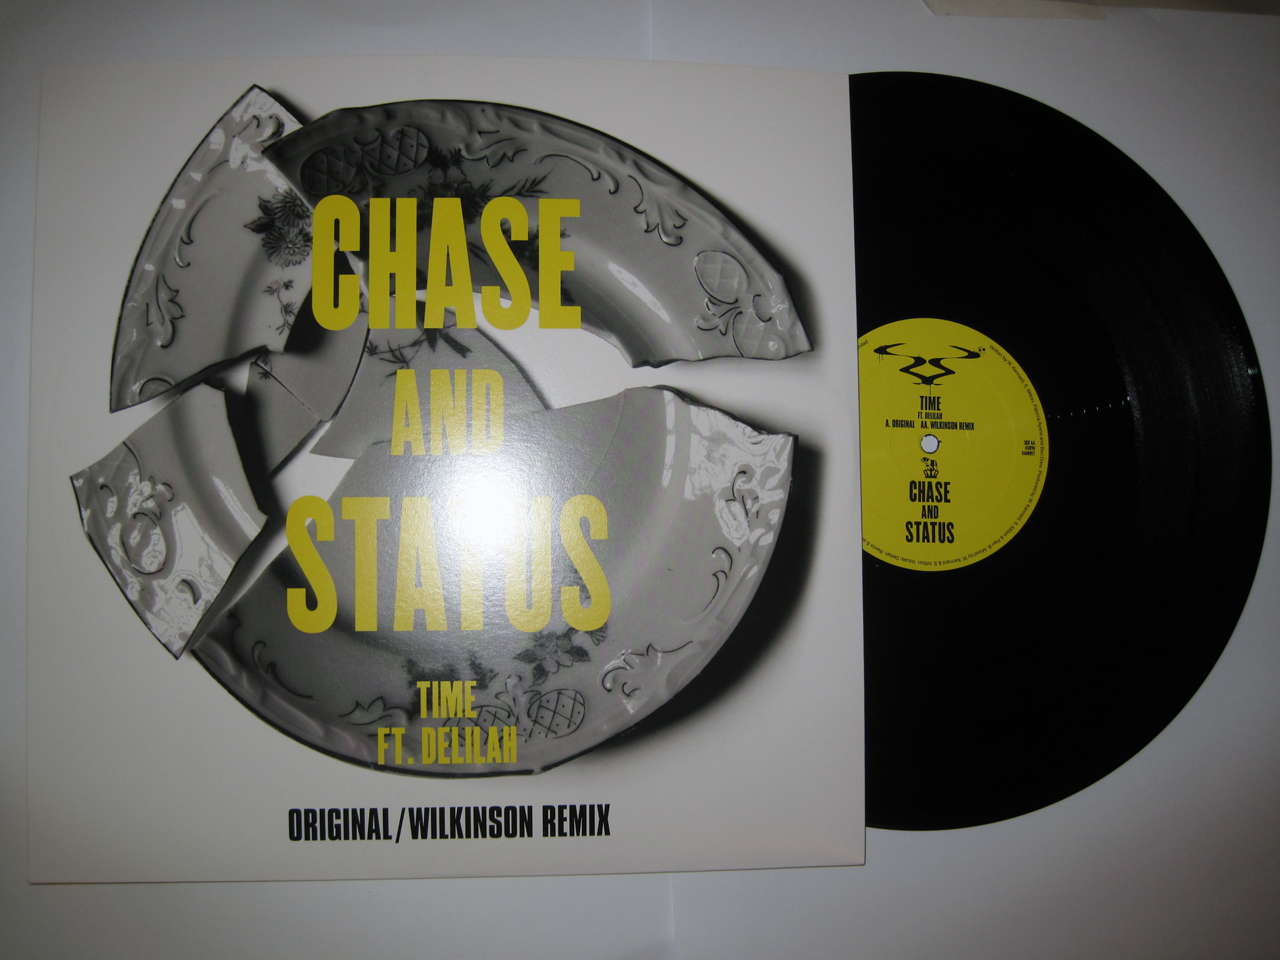 Chase and status b